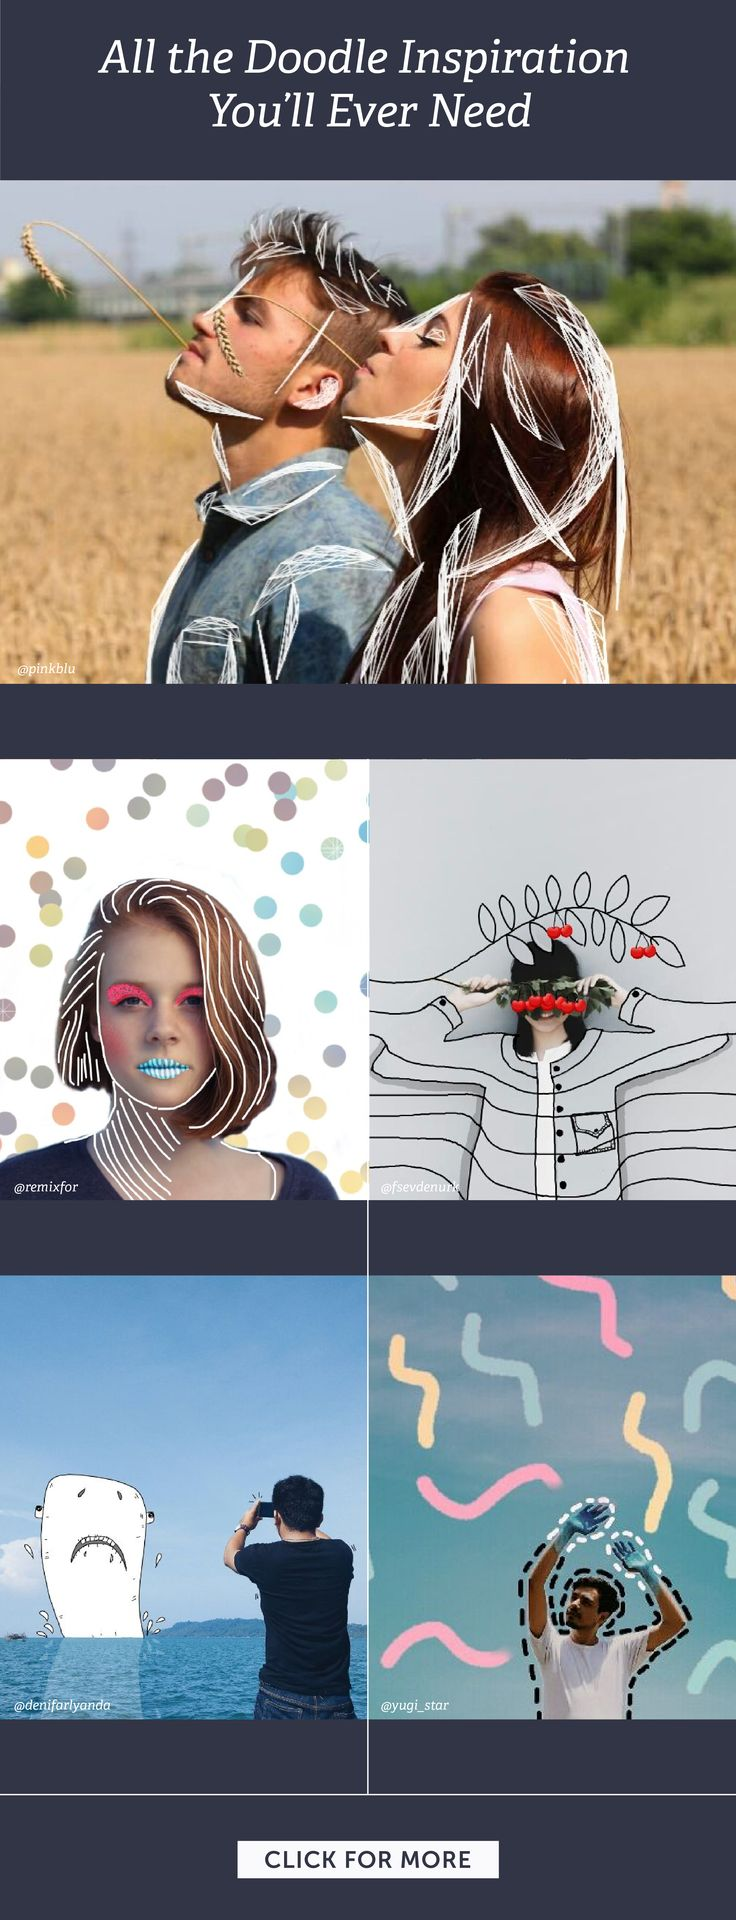 Doodling is the most zen form of creativity, and PicsArt will inspire you to create awesome doodles on your phone anywhere, anytime.